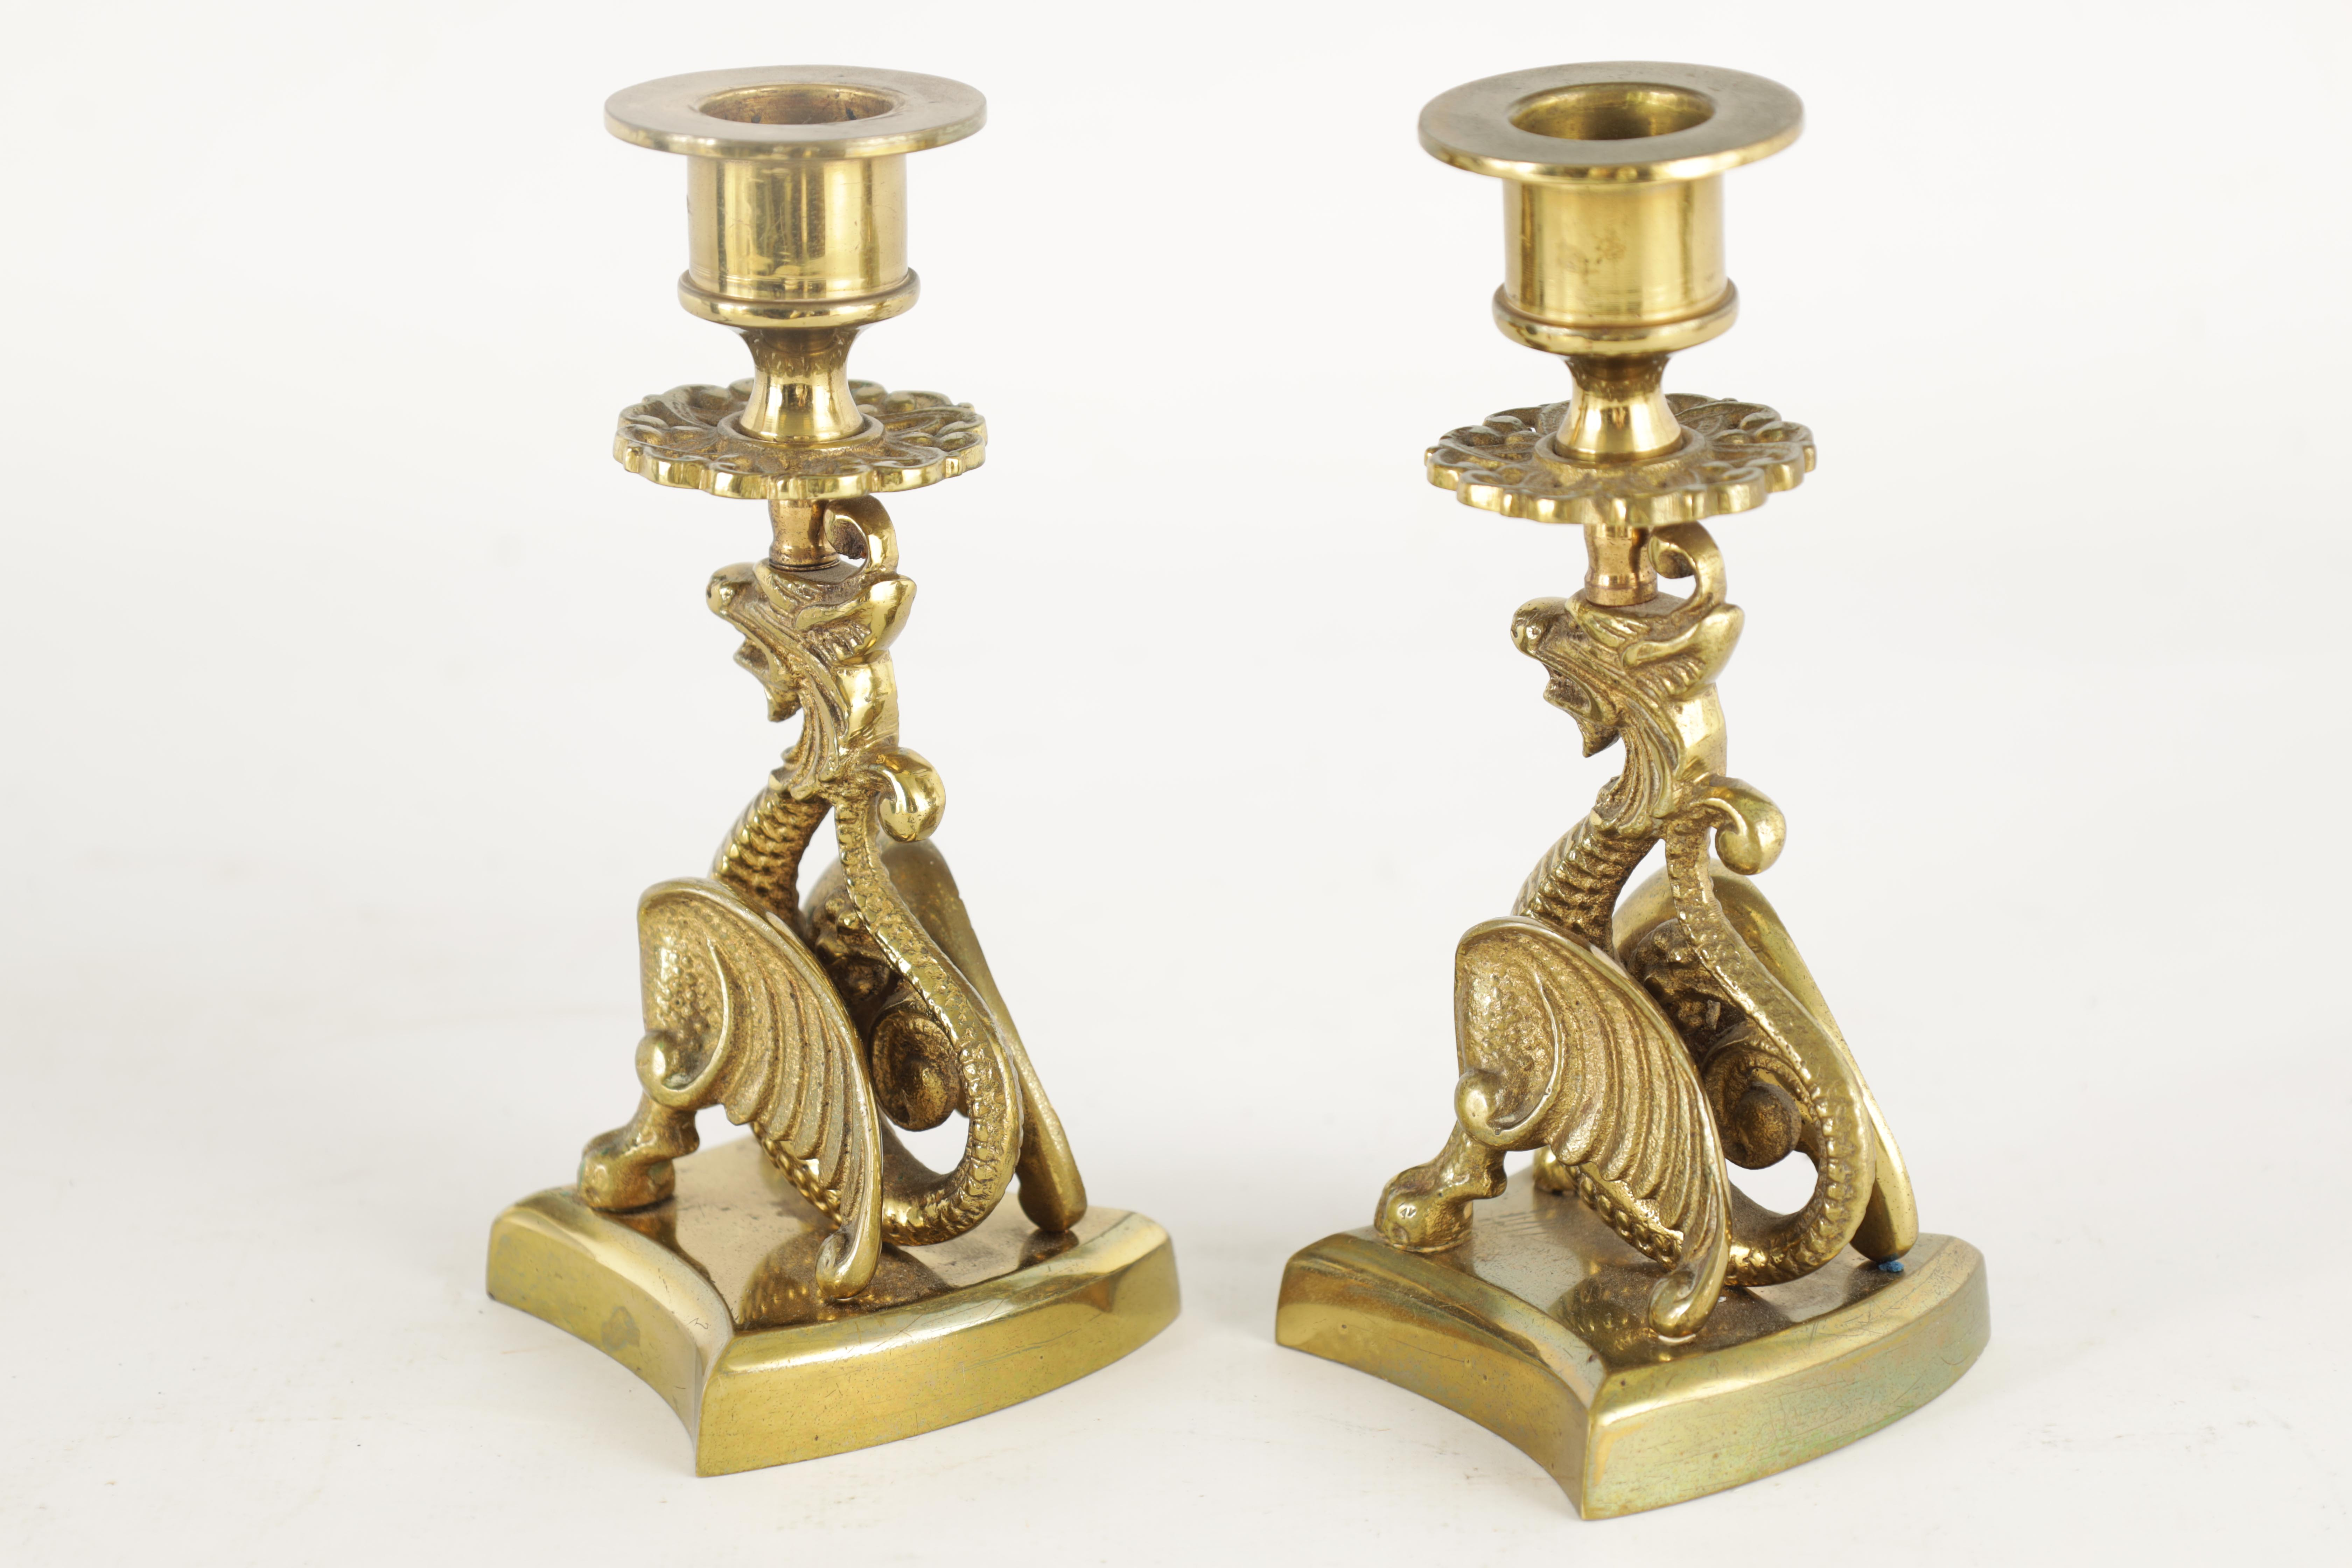 A PAIR OF ORIENTAL STYLE BRASS CANDLESTICKS with crouching dragon and shaped bases 14cm high - Image 11 of 11